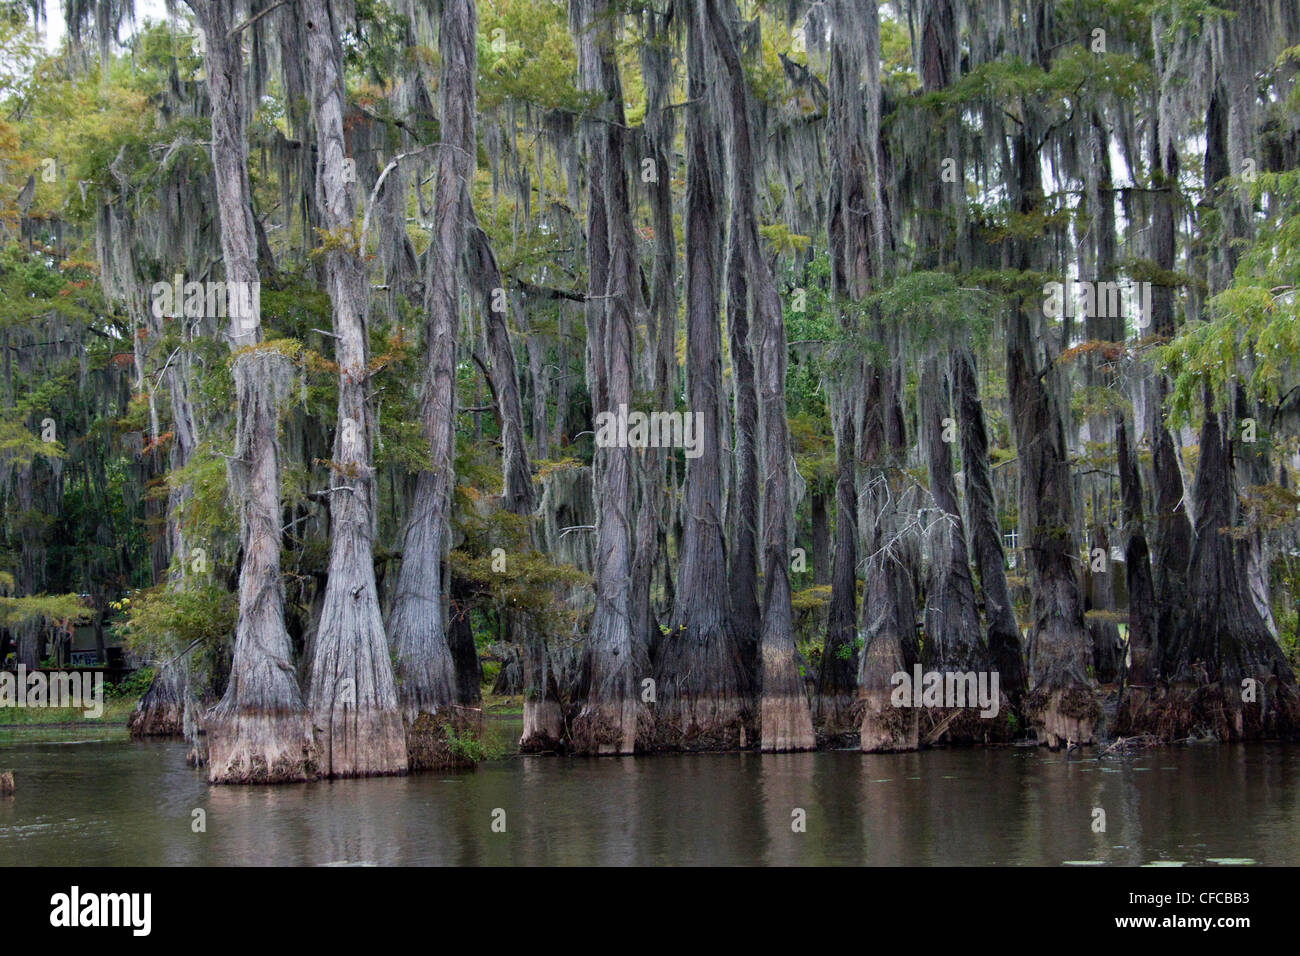 Angiosperms, Bald Cypress, Bald-cypress, Baldcypress, Bromeliaceae, Caddo lake, Commelinids, Cupressaceae, Cypress - Stock Image